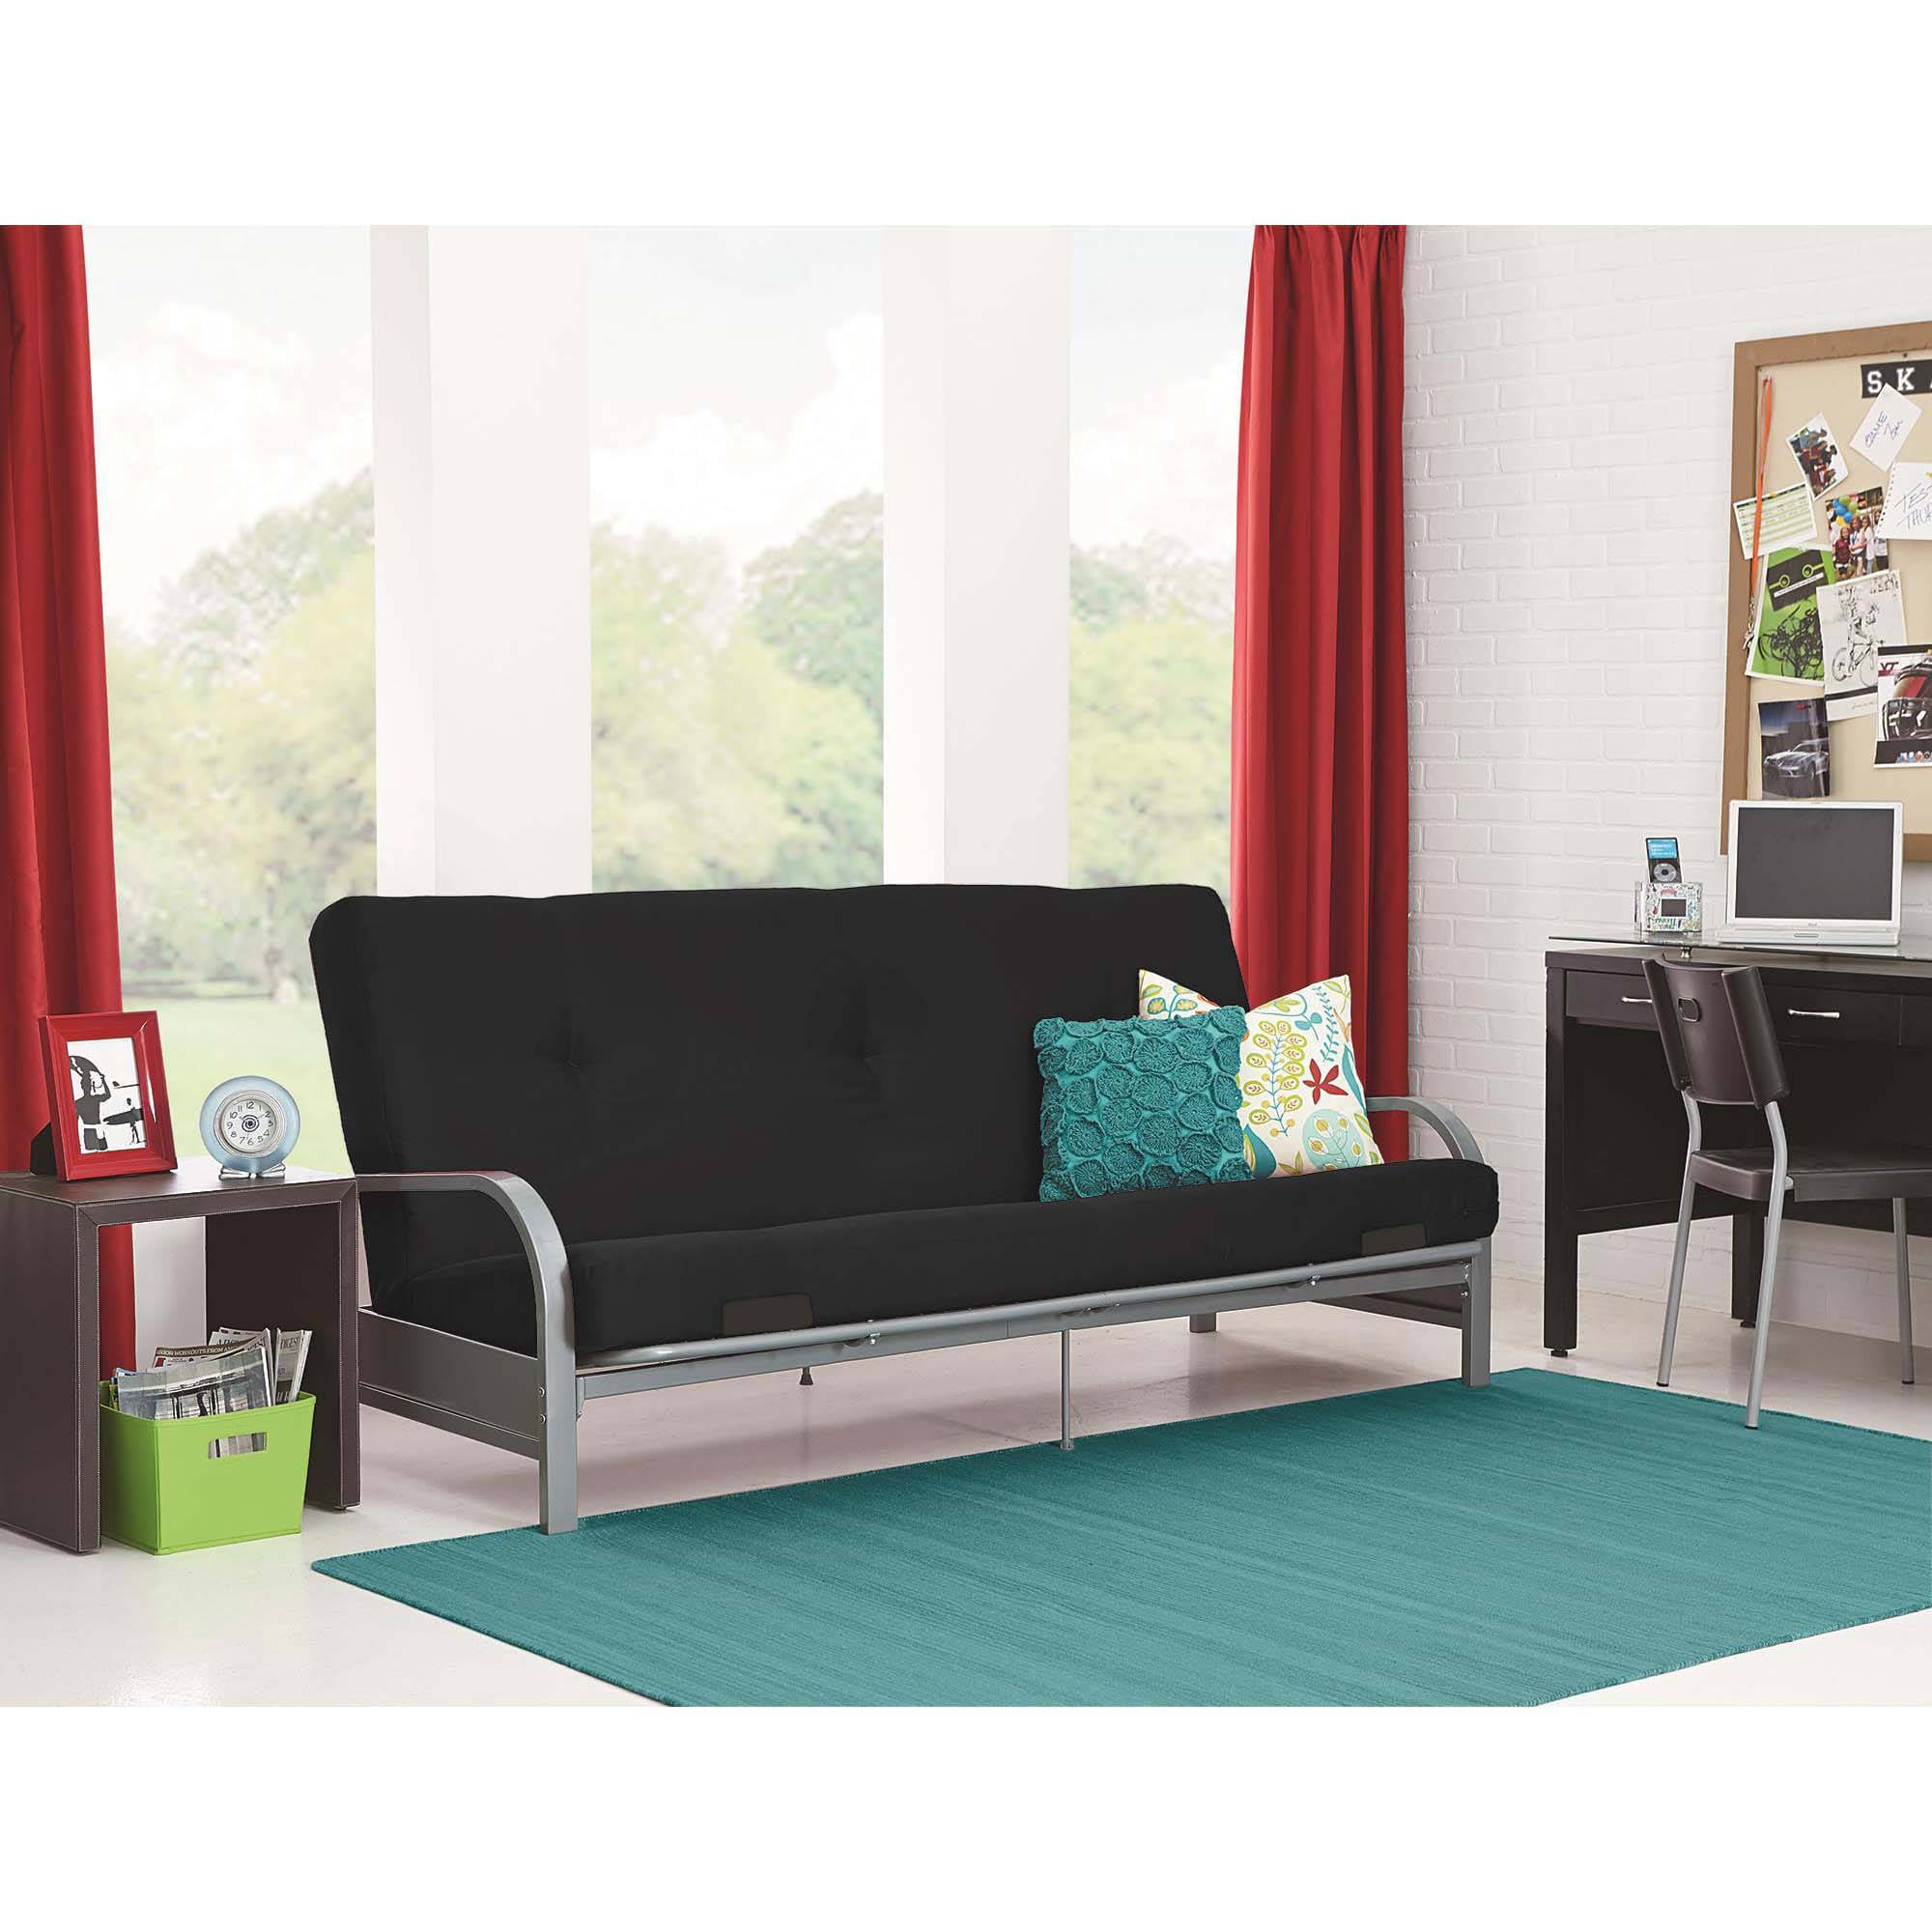 Ordinaire Mainstays Silver Metal Arm Futon Frame With Full Size Mattress, Multiple  Colors   Walmart.com